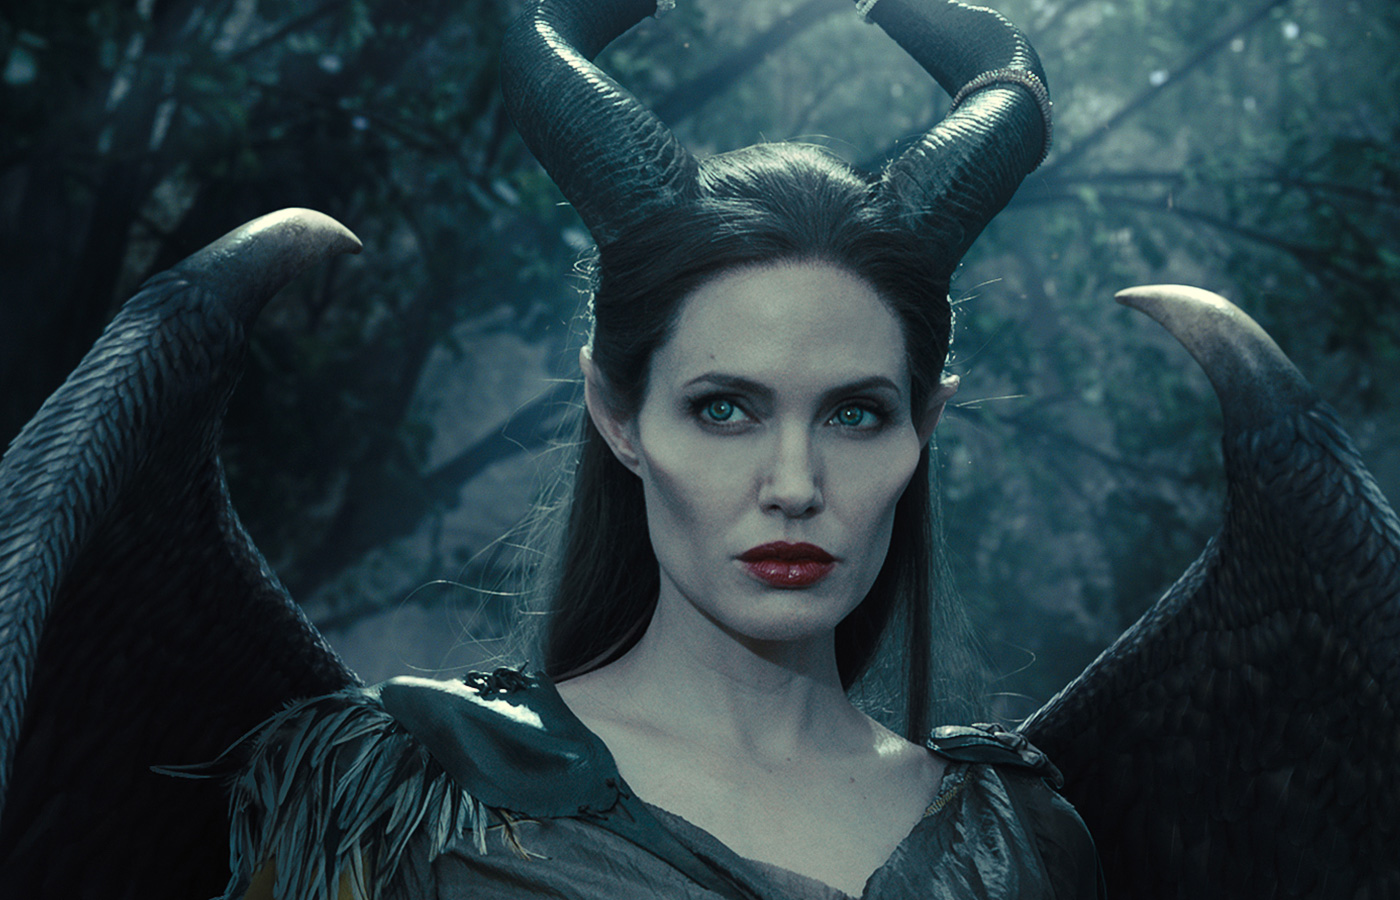 From animal bones to leather corsets, 'Maleficent' is full of surprises